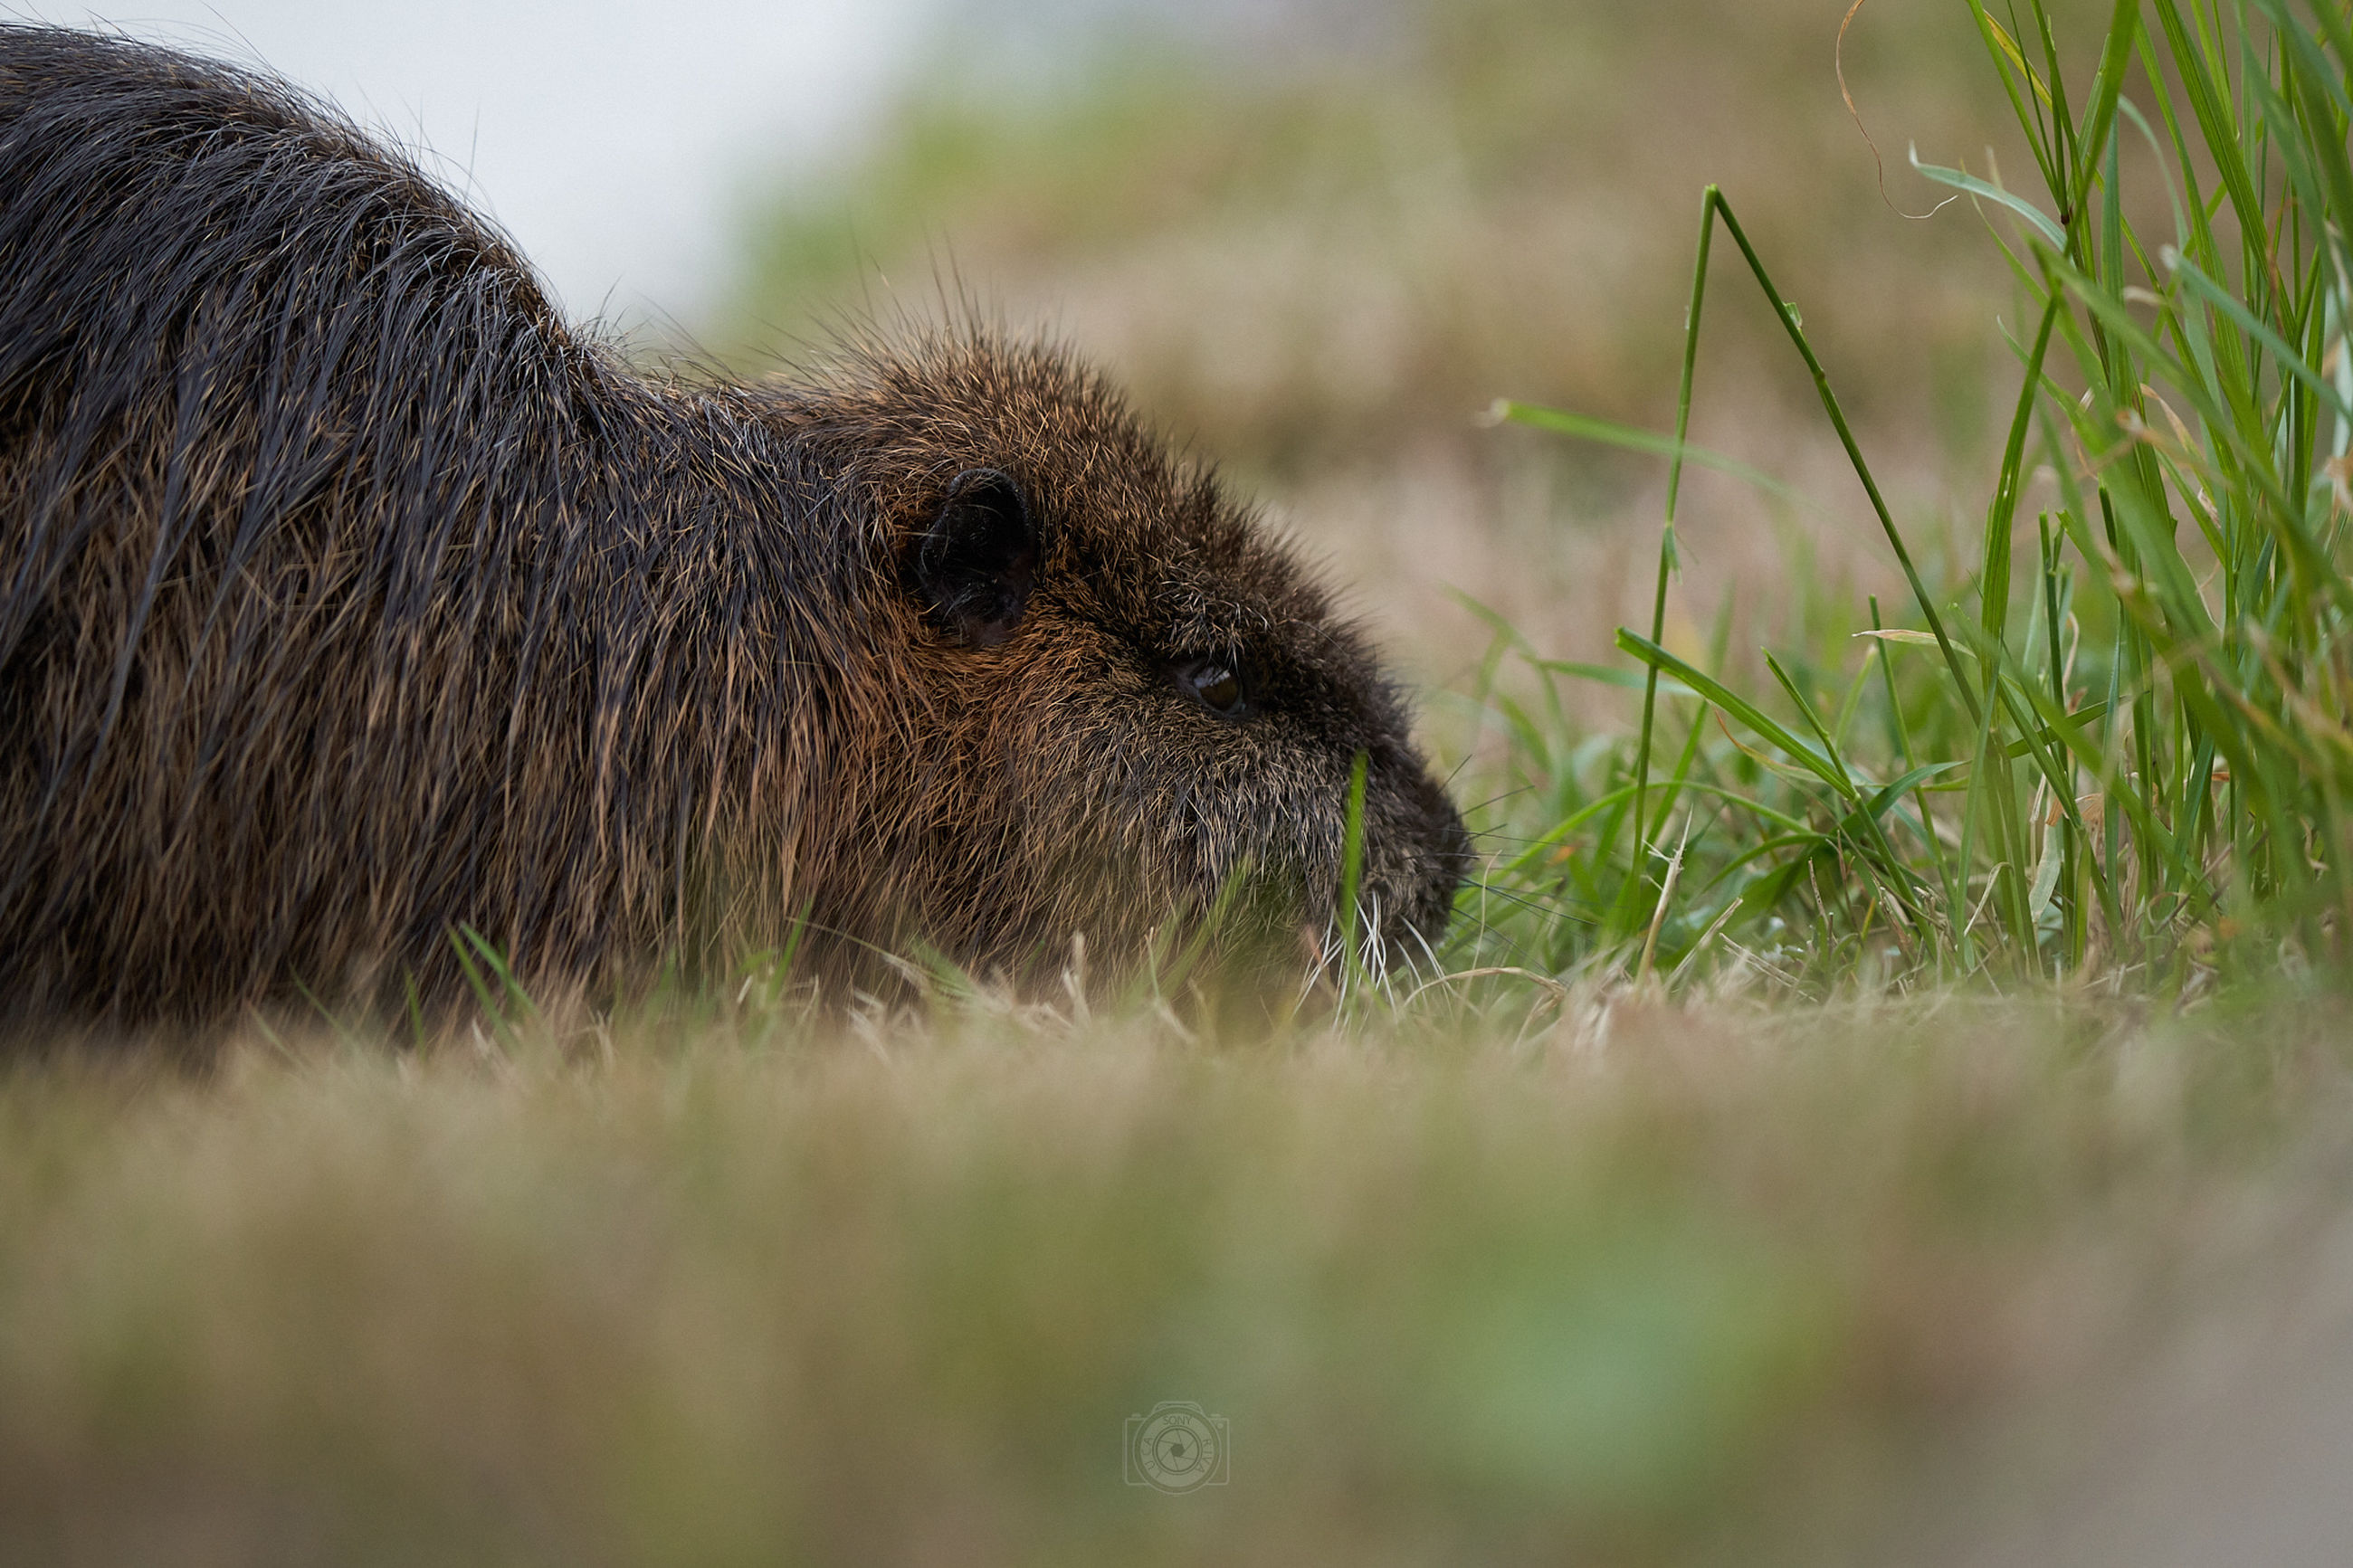 animal, animal themes, animal wildlife, mammal, one animal, grass, wildlife, plant, no people, whiskers, nature, rodent, selective focus, outdoors, day, side view, animal body part, pet